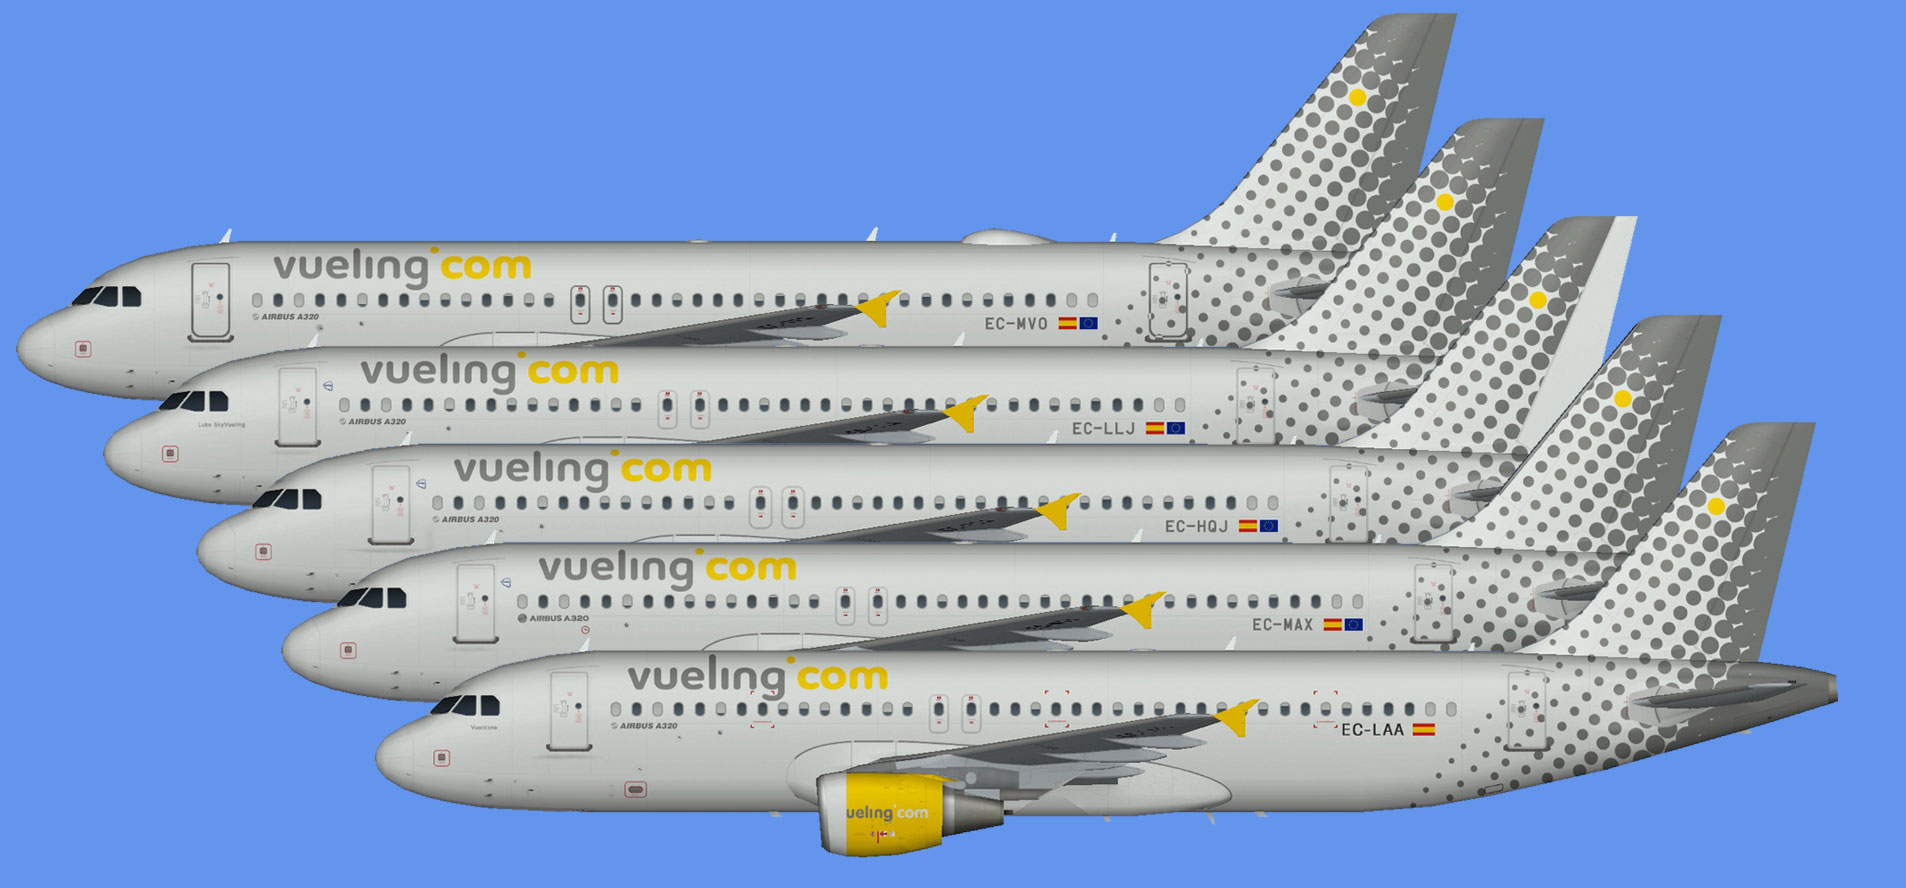 Vueling Airbus A320 CFM